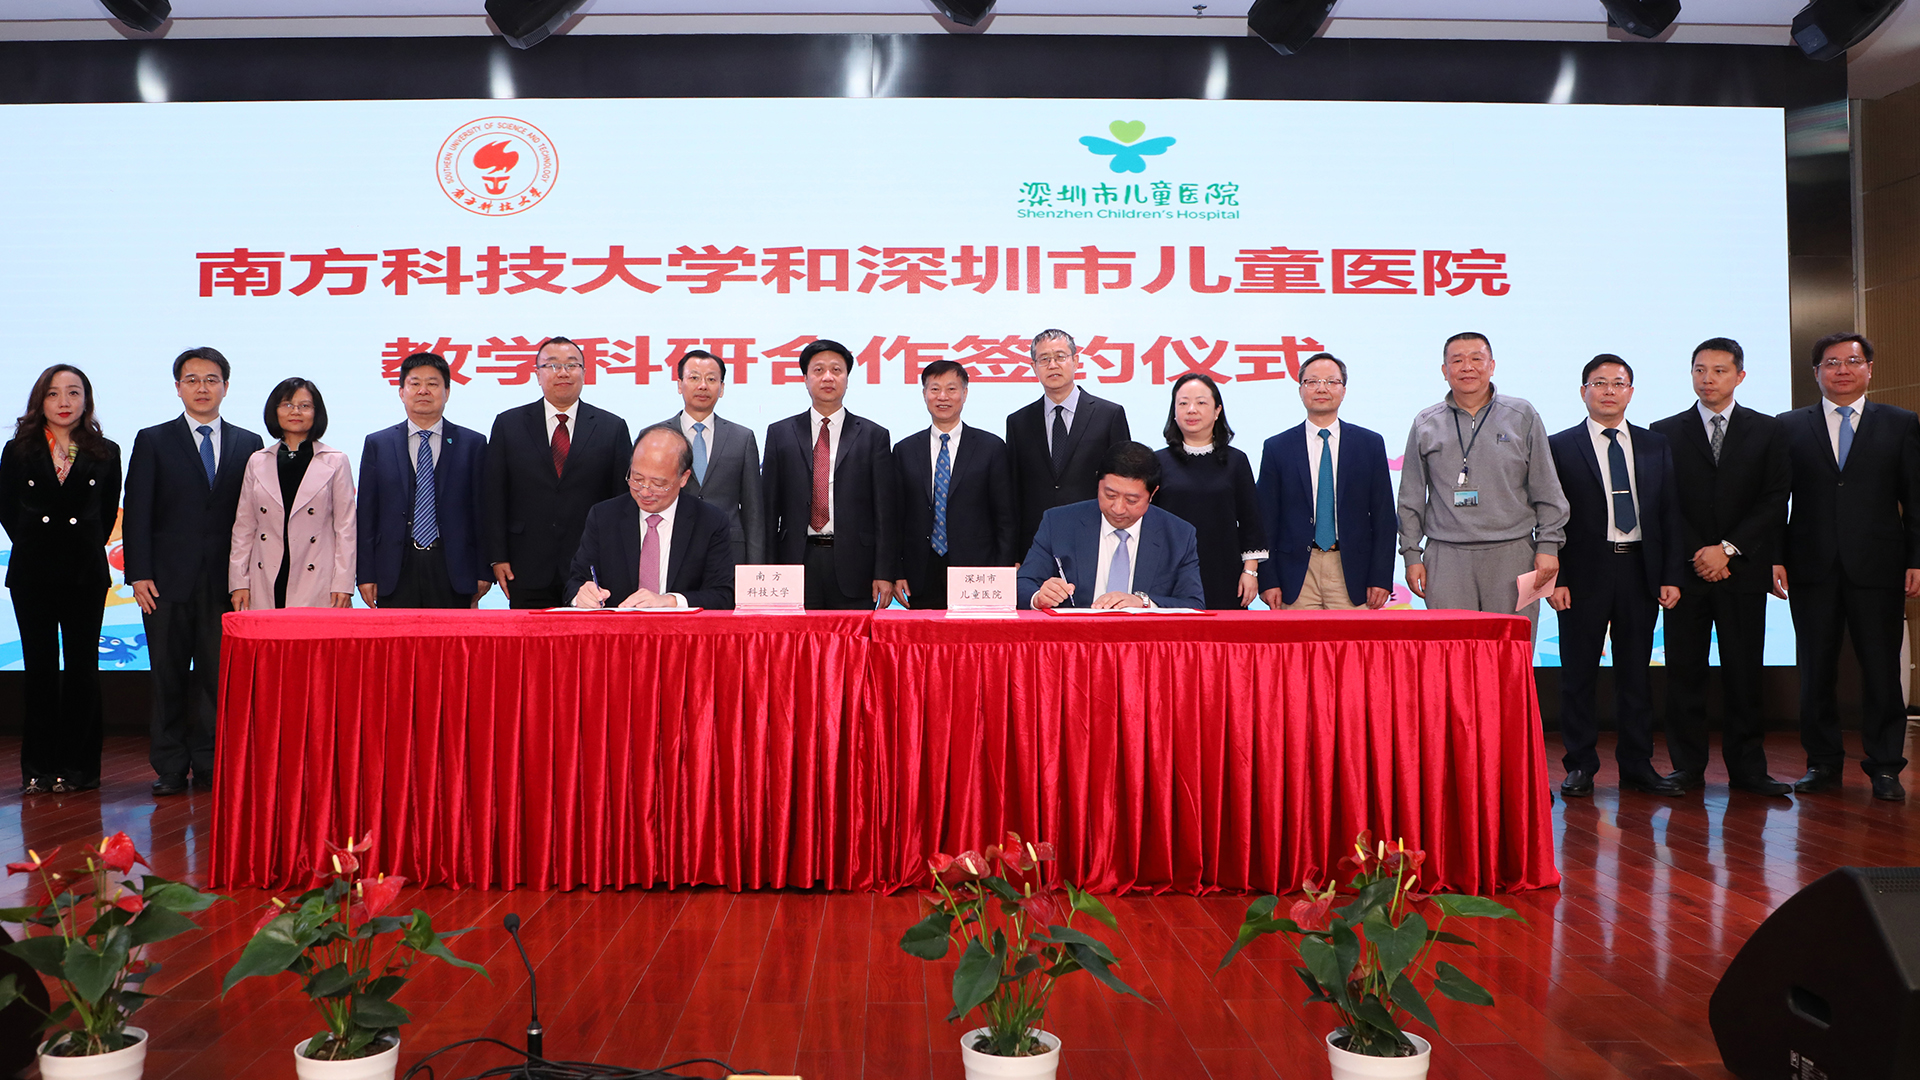 SUSTech signs teaching & research agreement with Shenzhen Children's Hospital